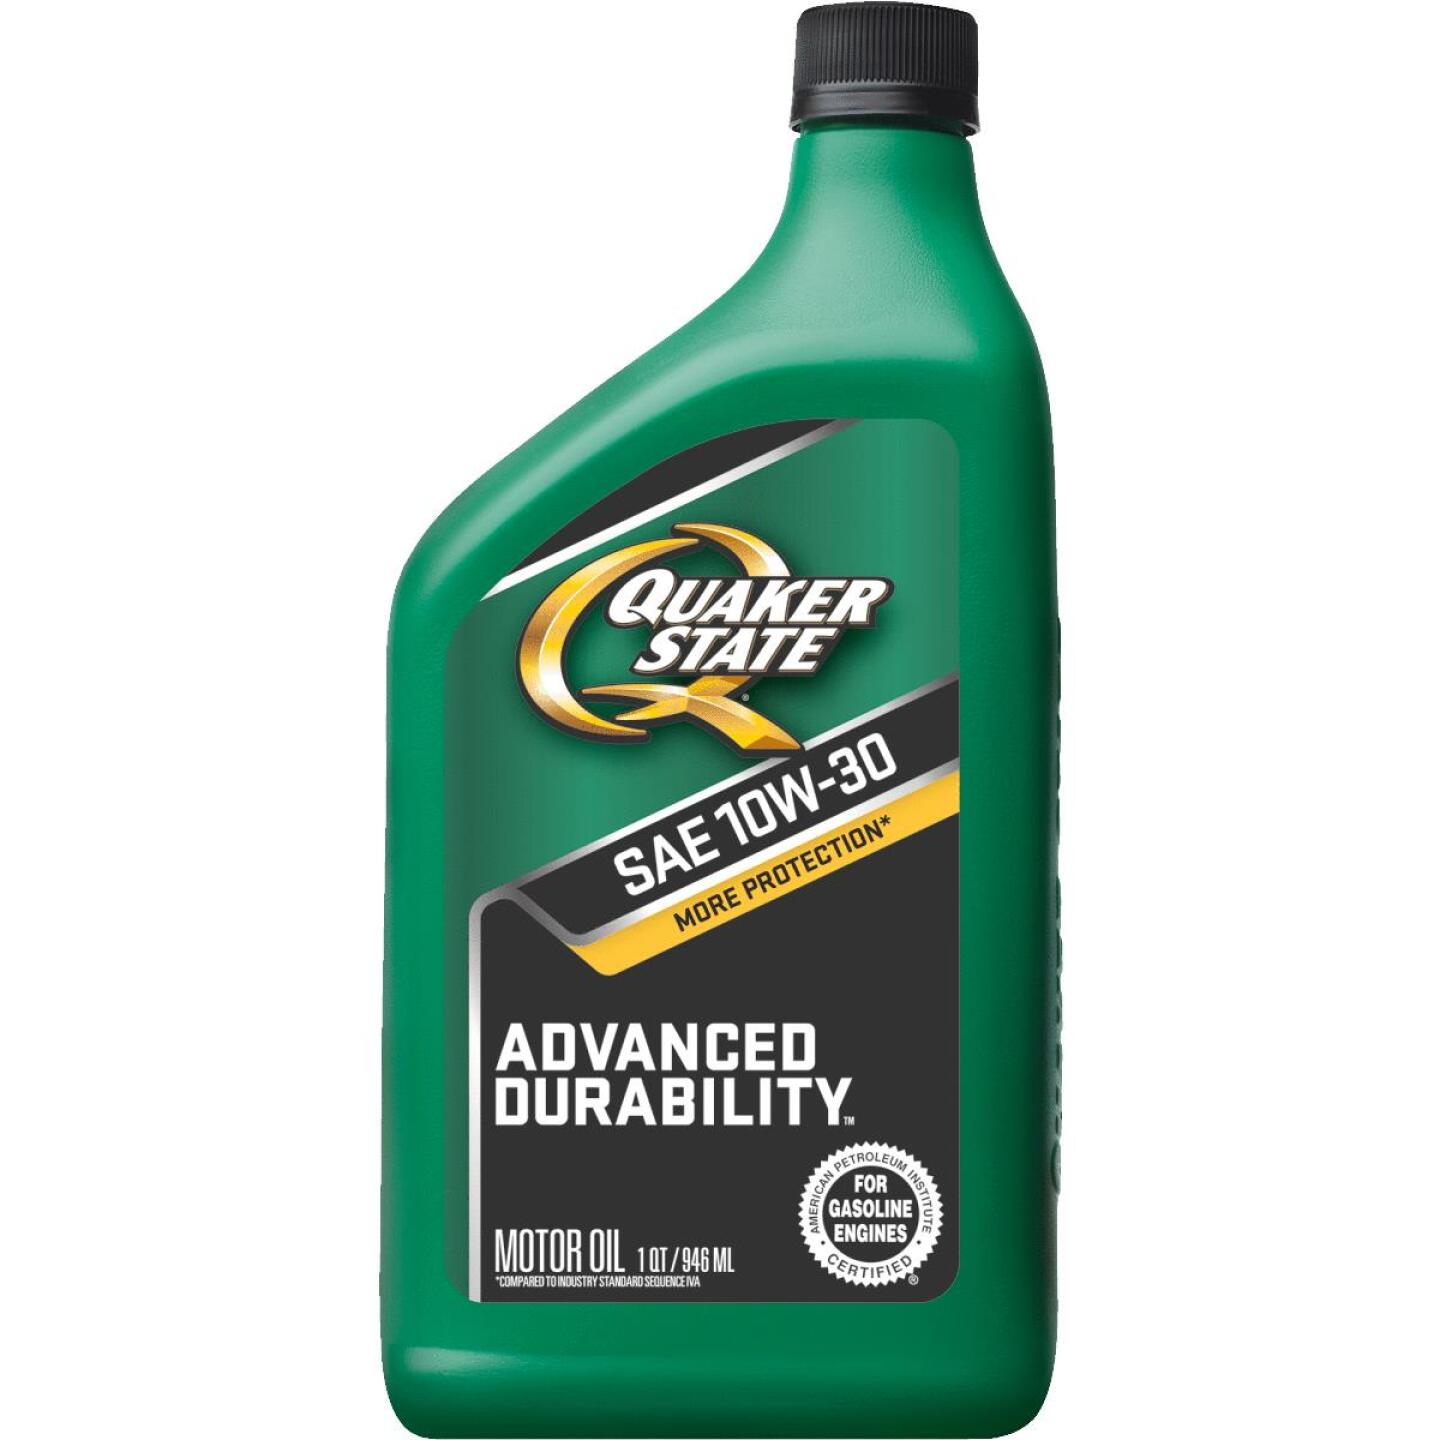 Quaker State Advanced Durability 10W30 Quart Motor Oil Image 1